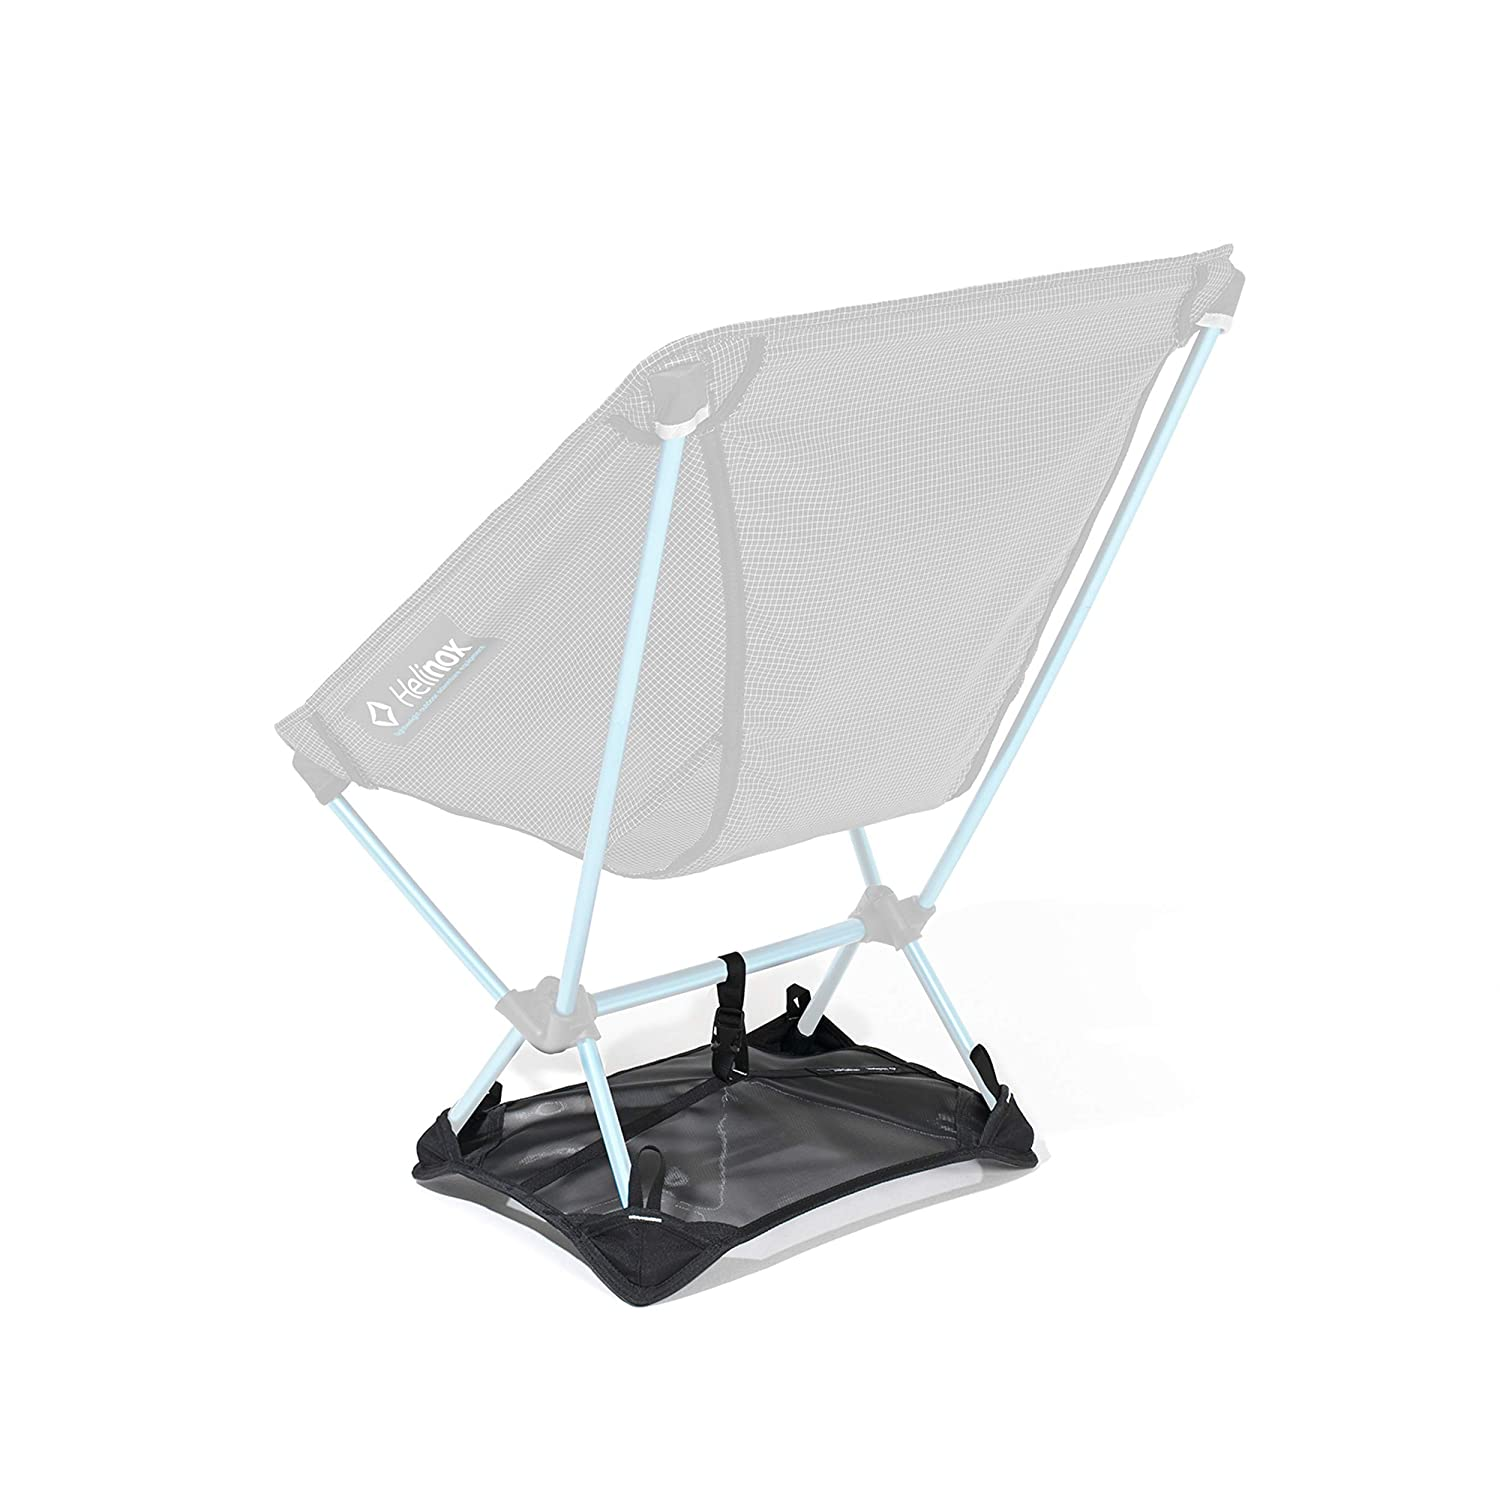 Helinox Protective Ground Sheet Accessory for Helinox Camp Chairs, Chair Zero